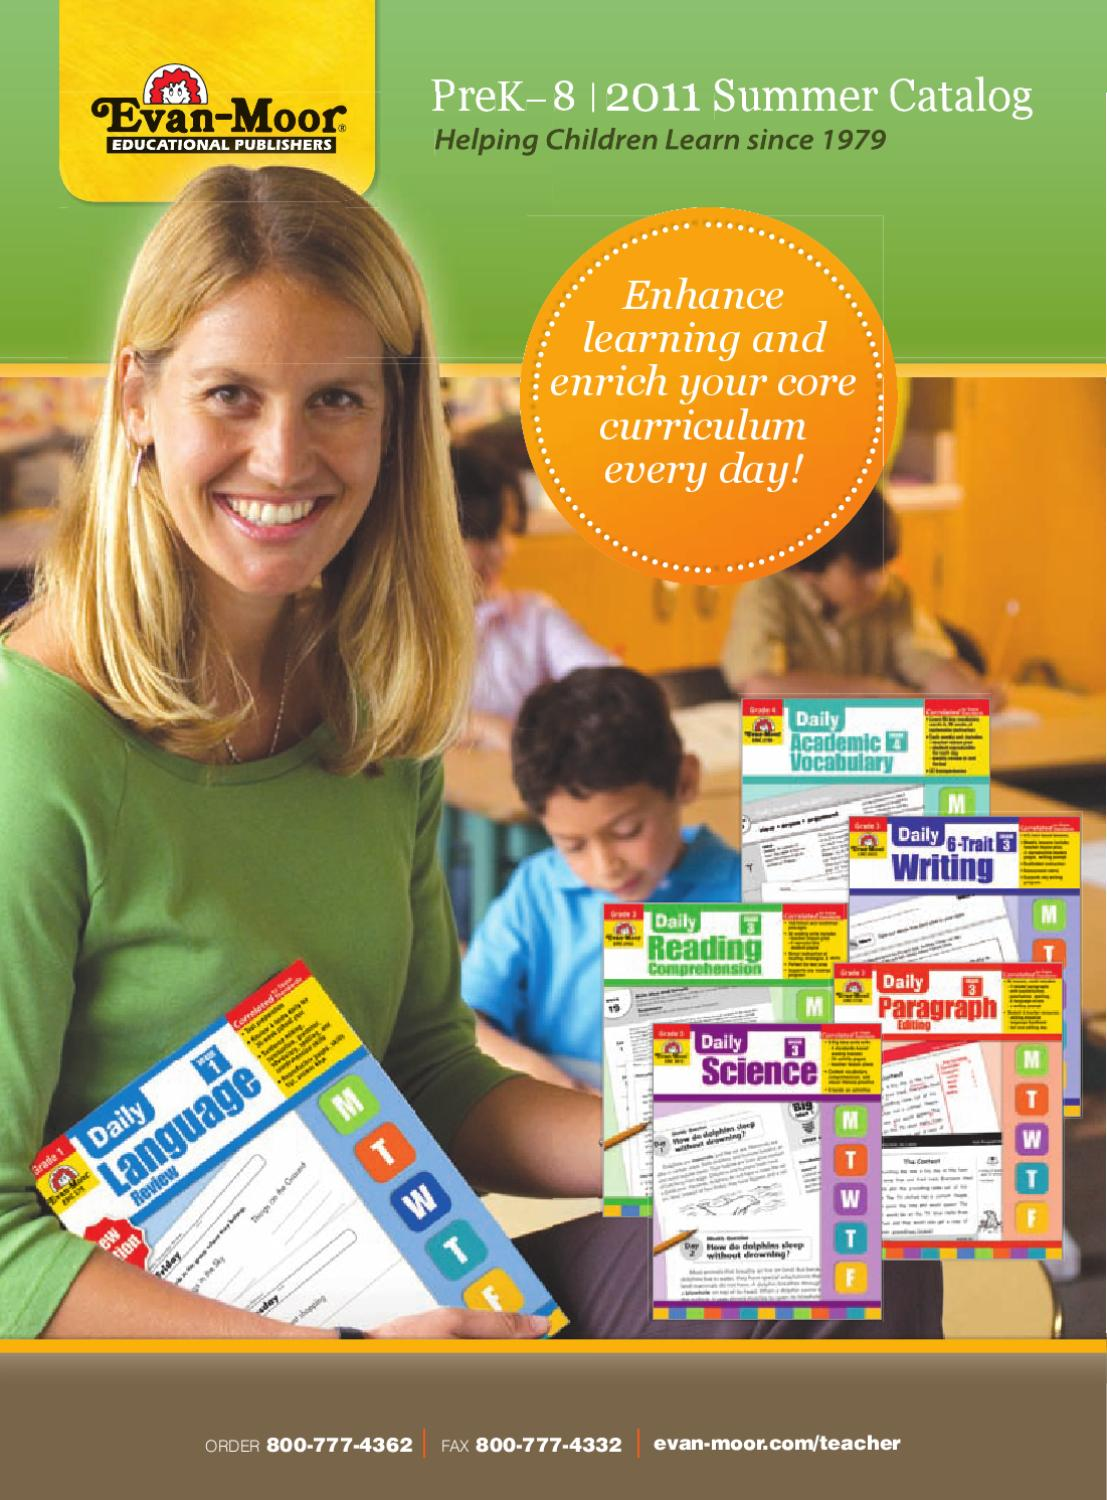 August 2011 Catalog by Evan-Moor Educational Publishers - issuu